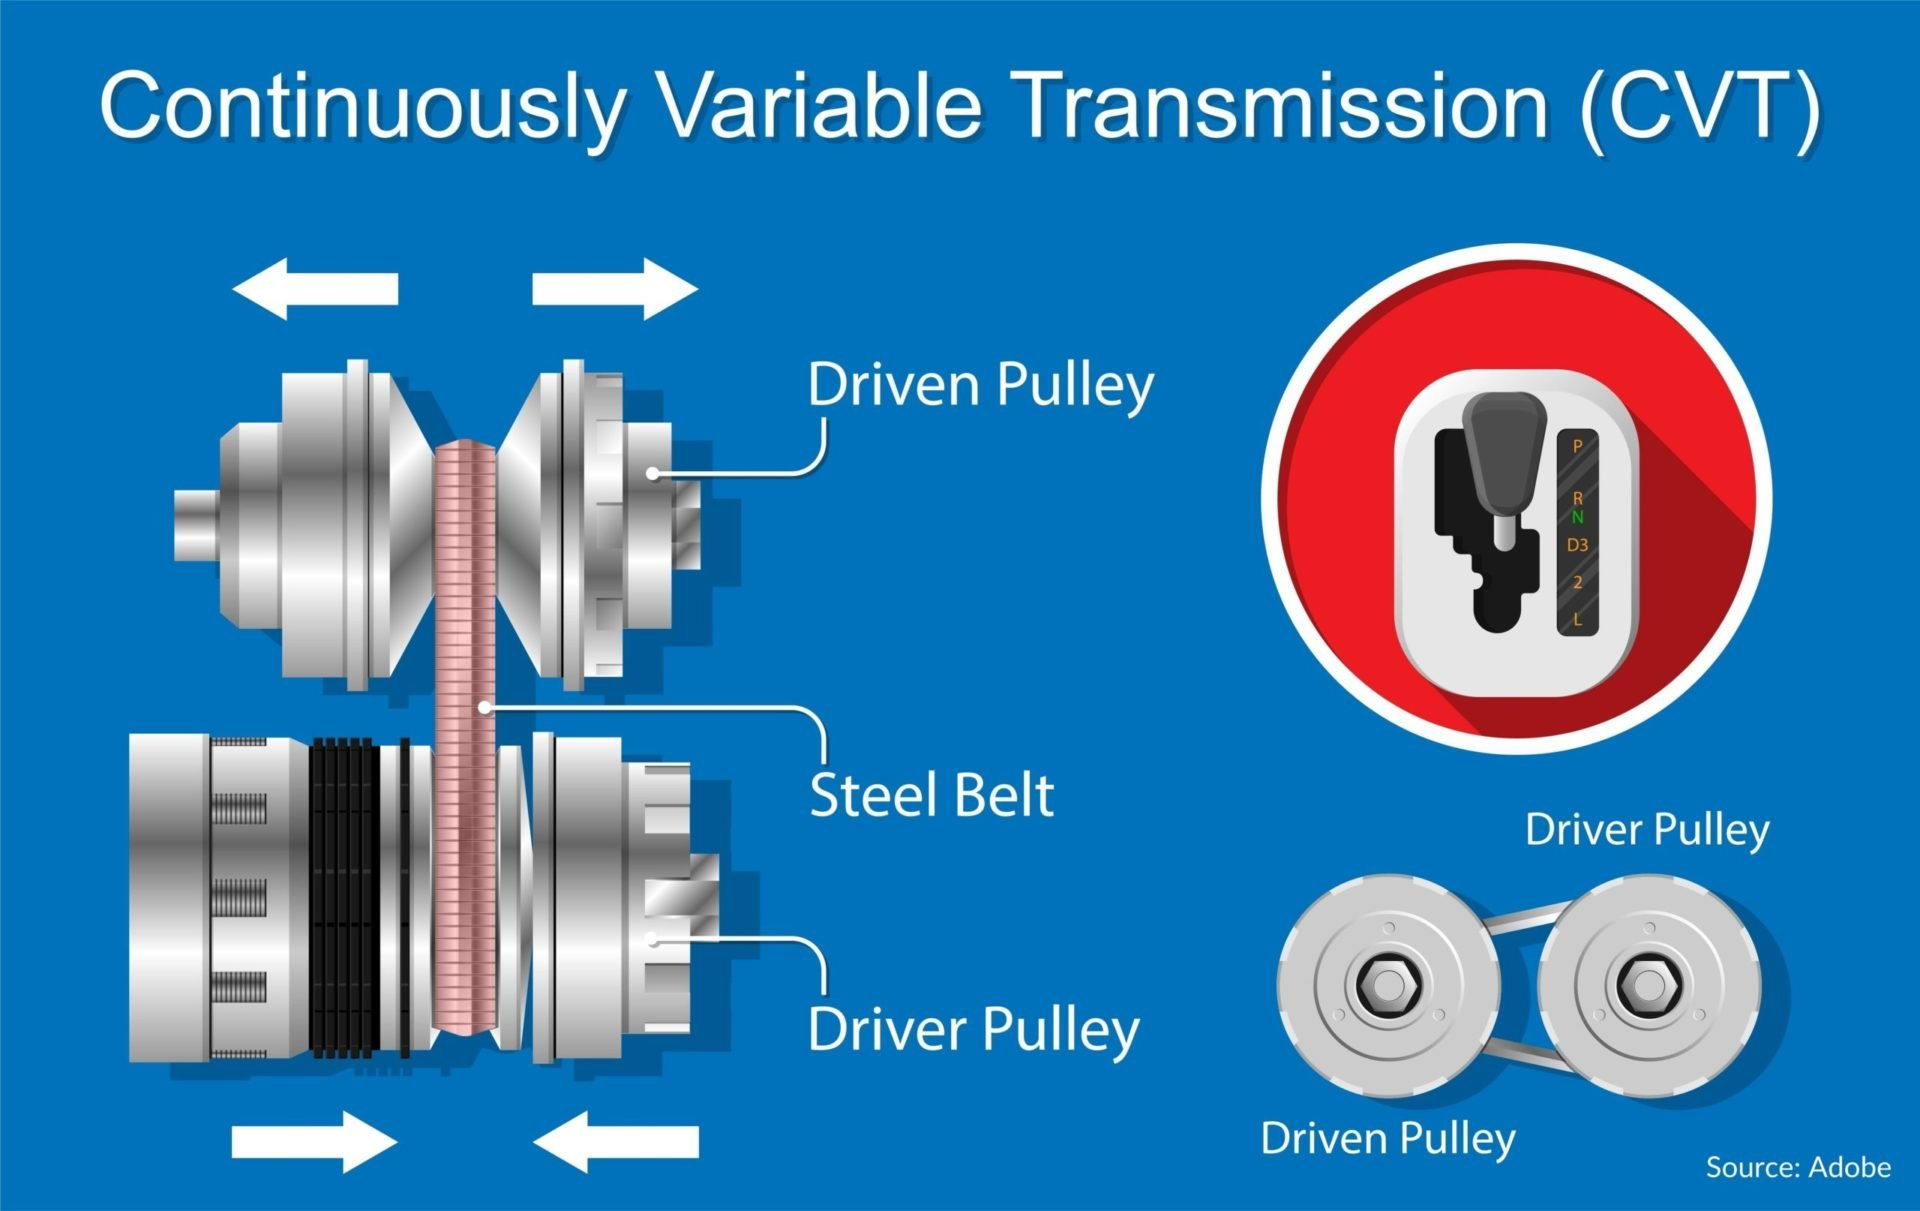 A visual representation of the pulley system in a continuously variable transmission, otherwise known as a CVT. This image was pulled from Adobe.